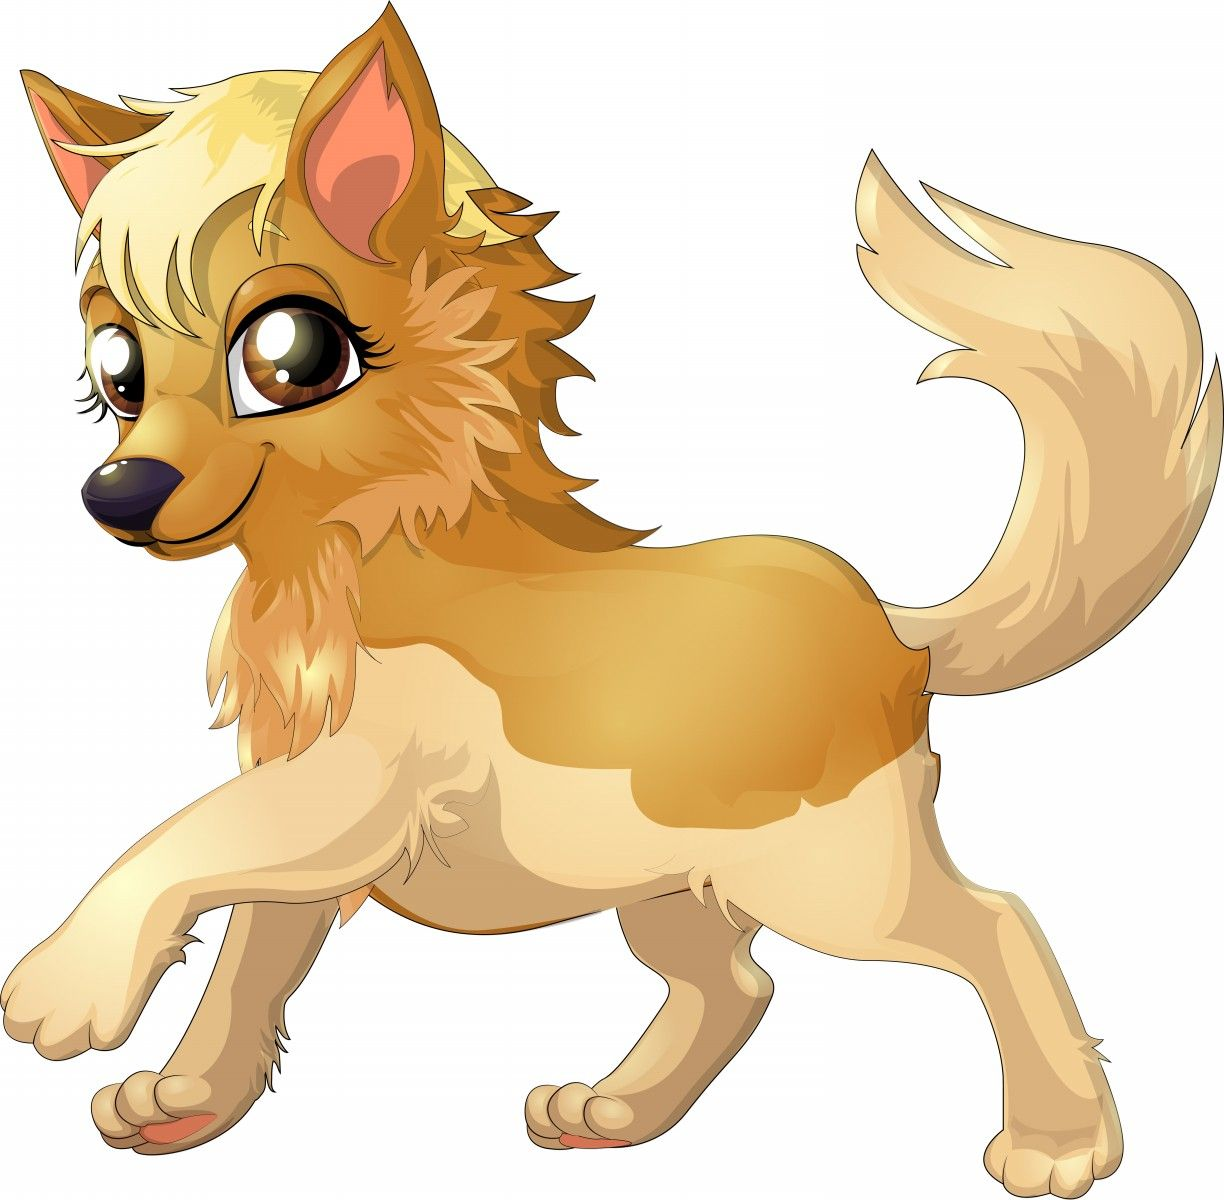 Cute Animals Cartoon Pictures Free Download Elsoar Cartoon Pics Animal Clipart Animal Art